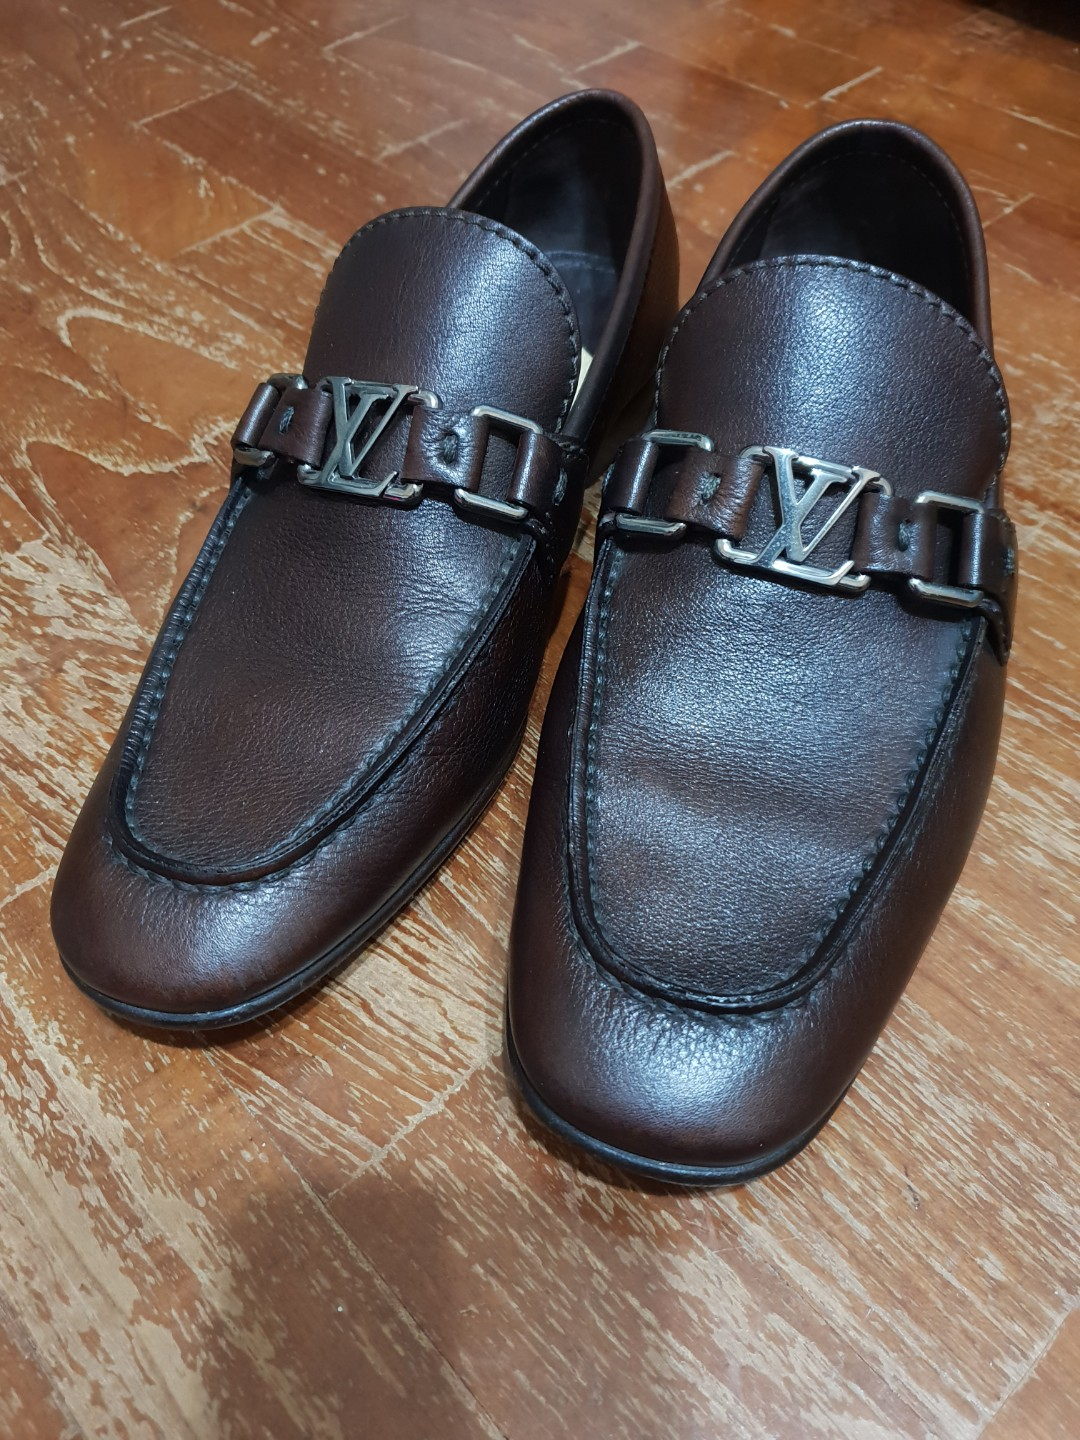 113476e9a87 Louis Vuitton Dark Brown Loafers